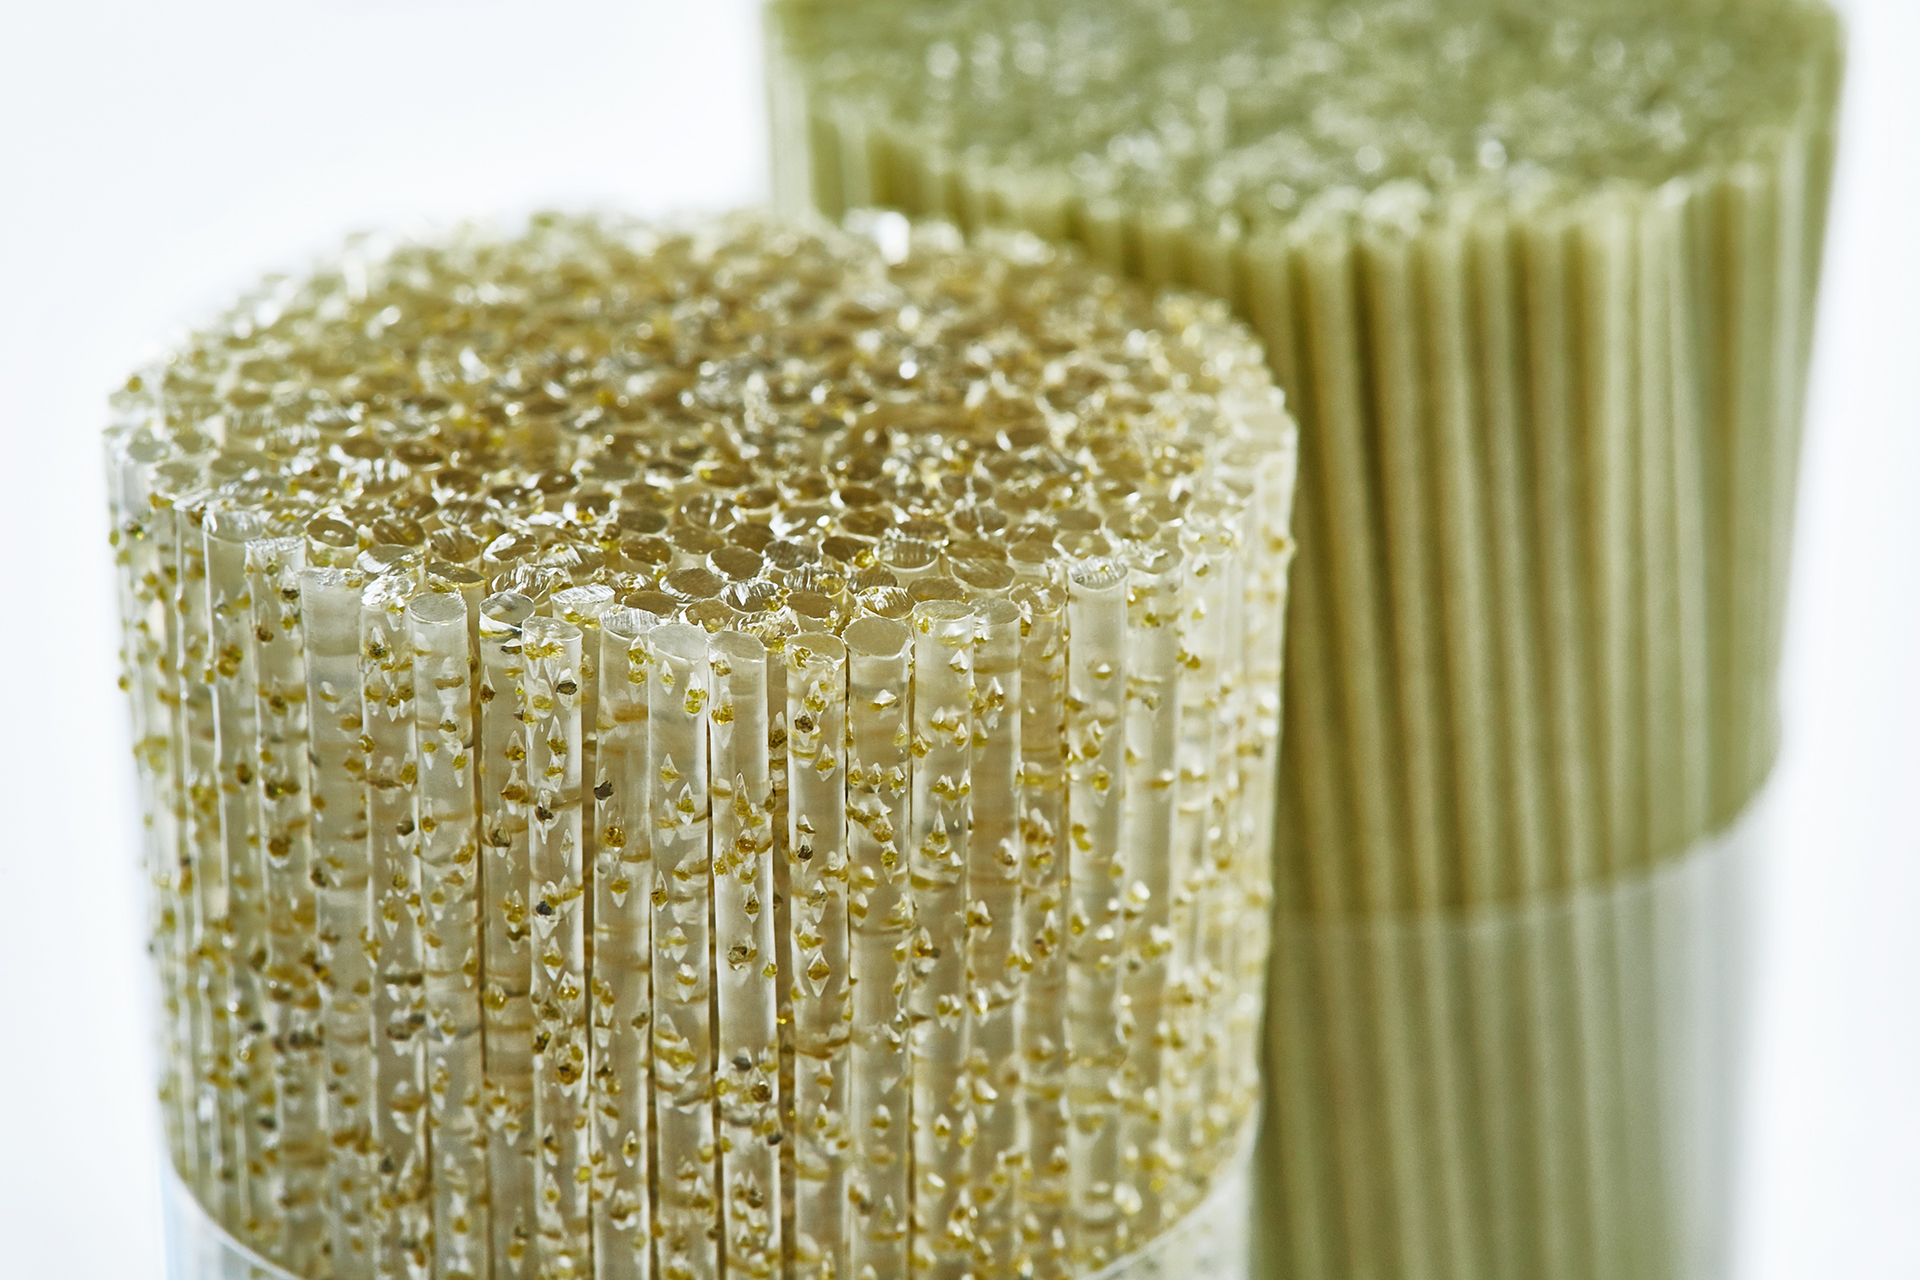 diamond abrasive filaments